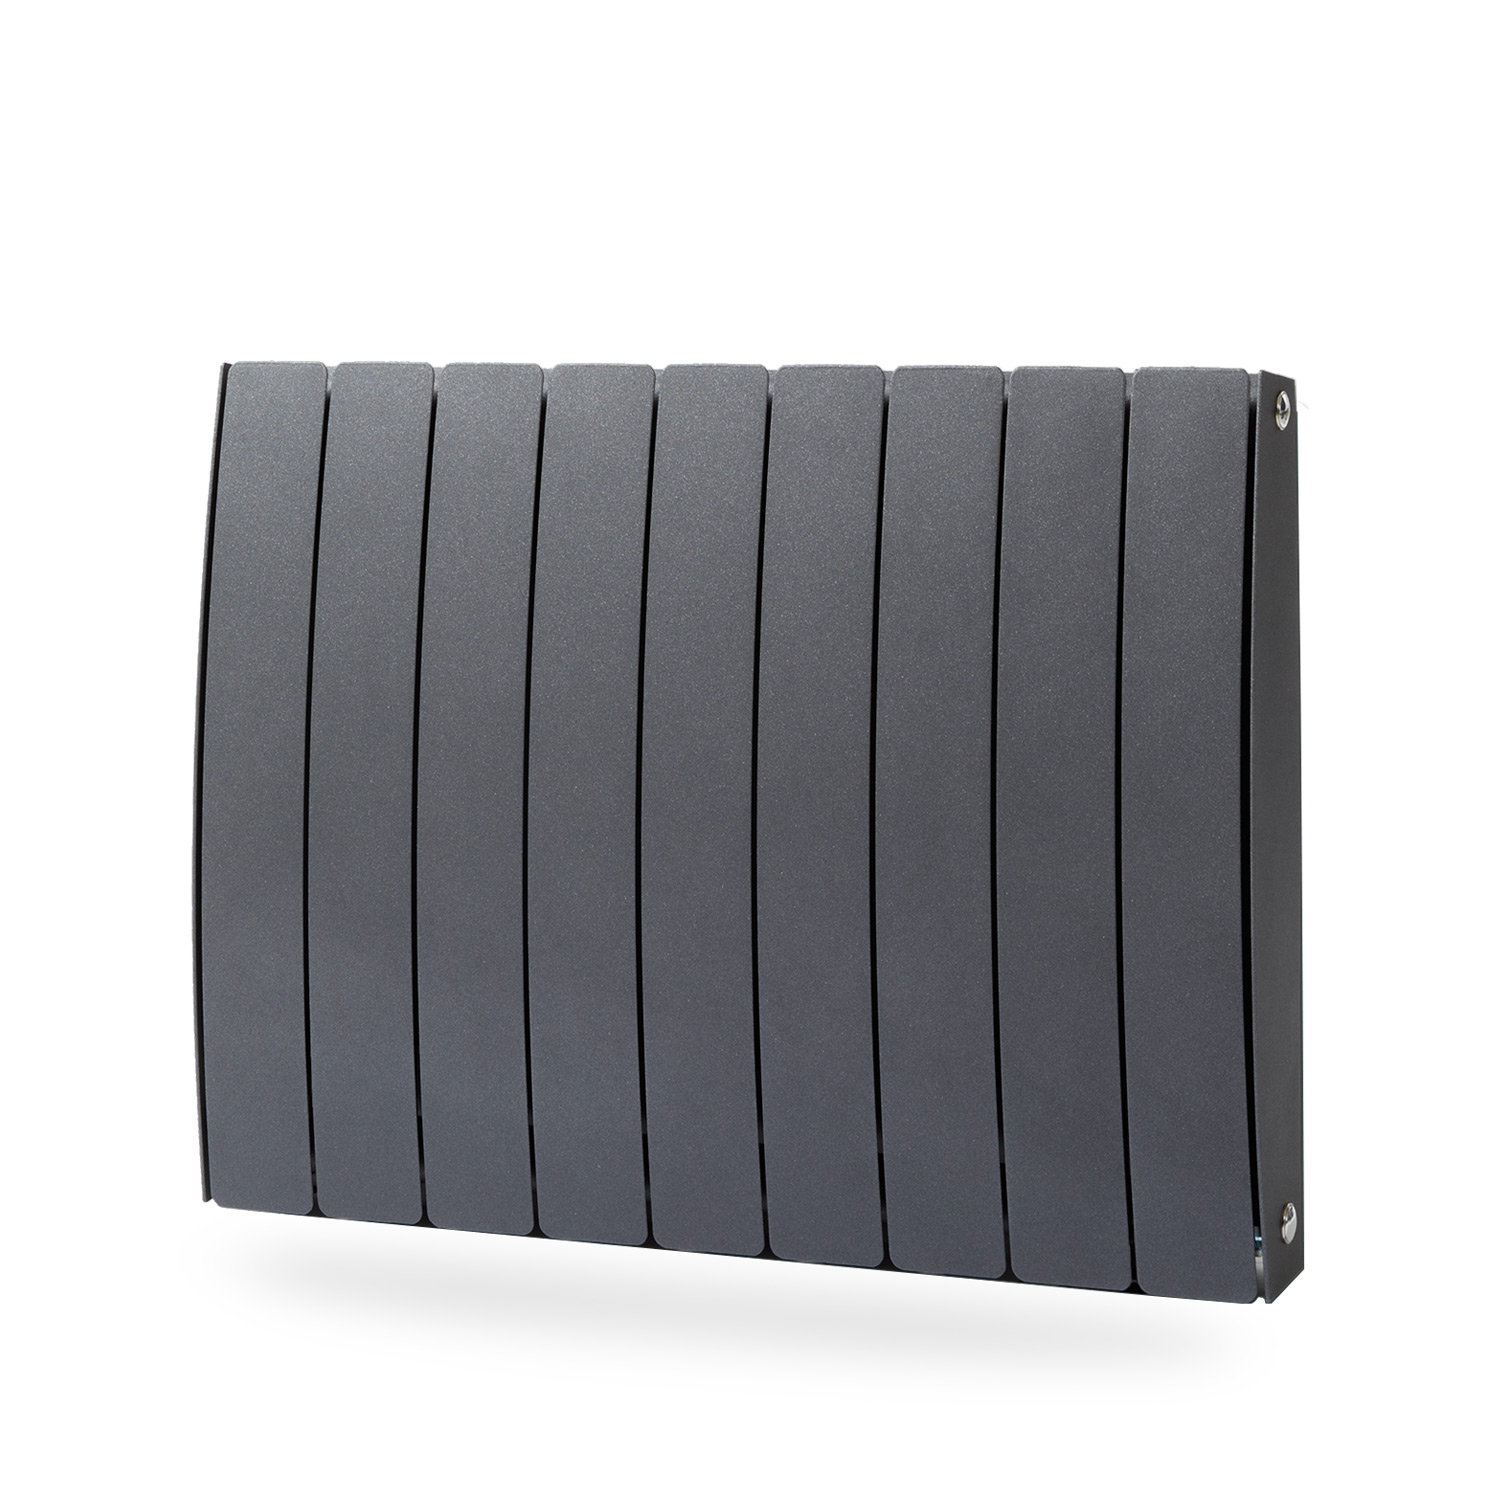 http://www.radson.com/images/products/electricradiators/bayo-electric-radiators-radson-outside.jpg